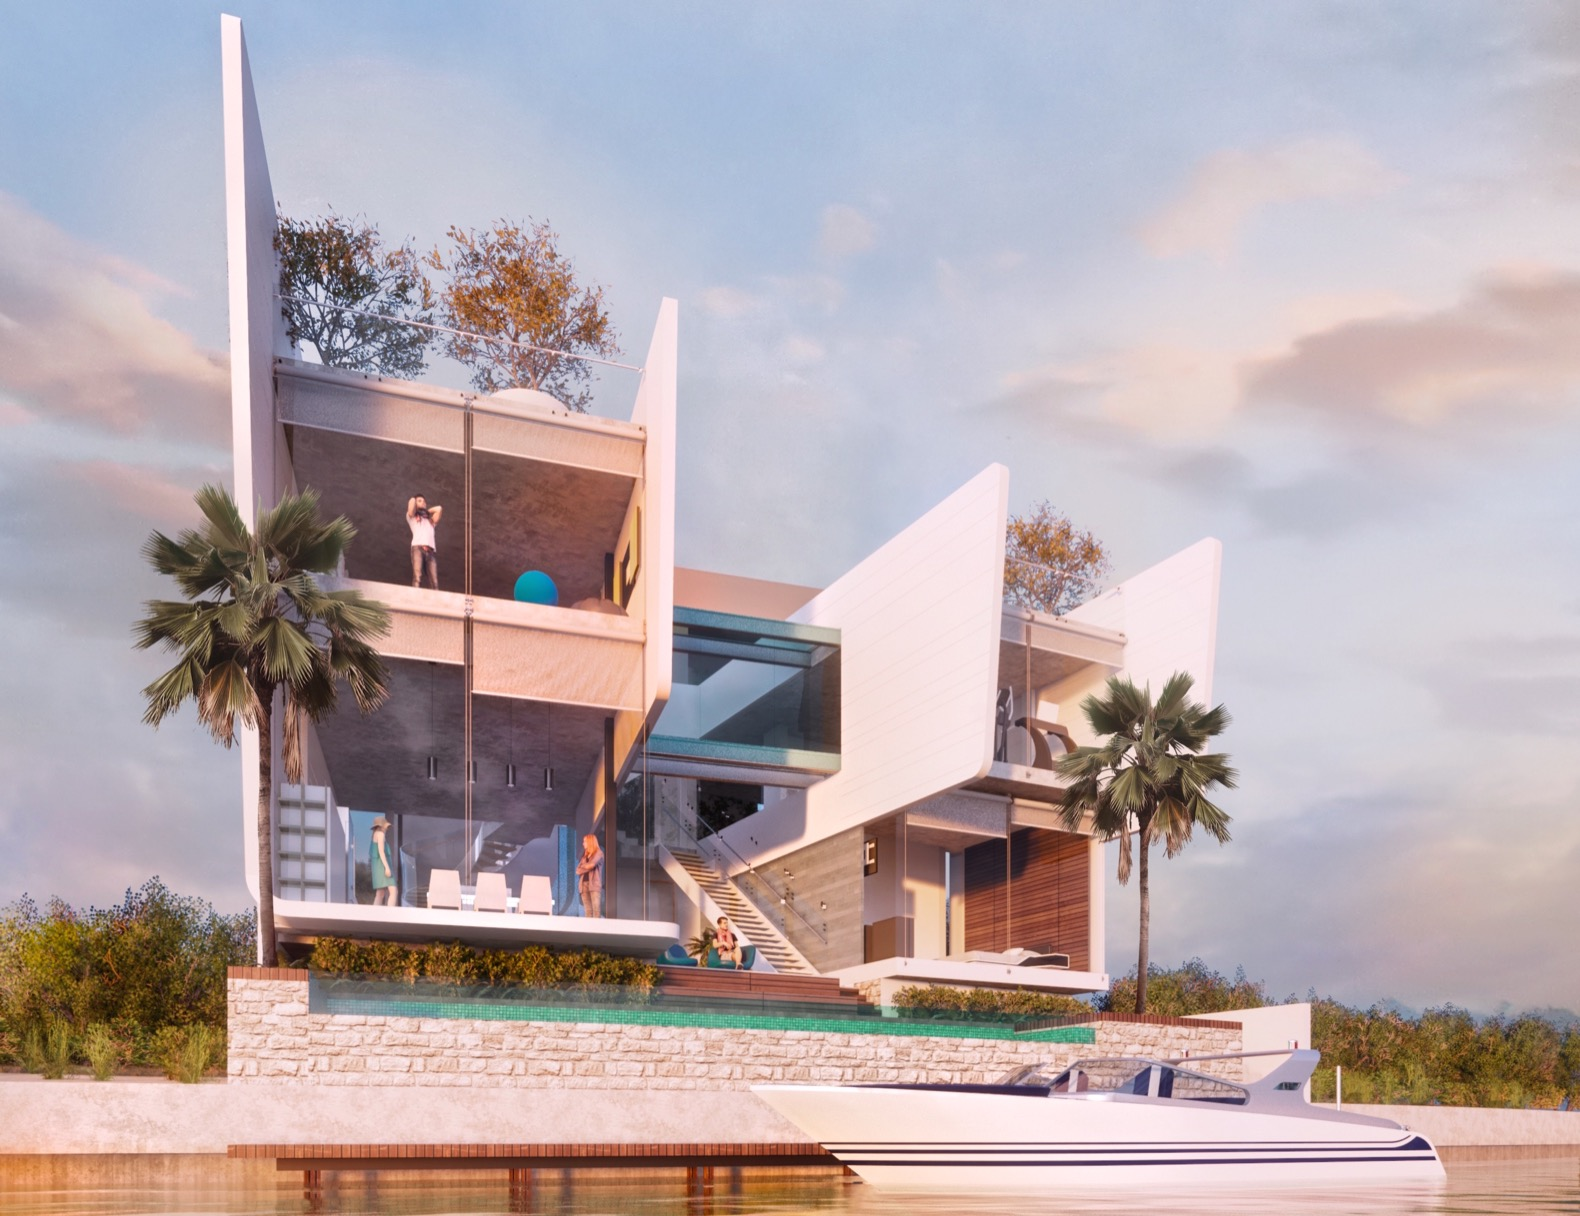 Bioclimatic home optimizes thermal comfort and energy efficiency in Cancun